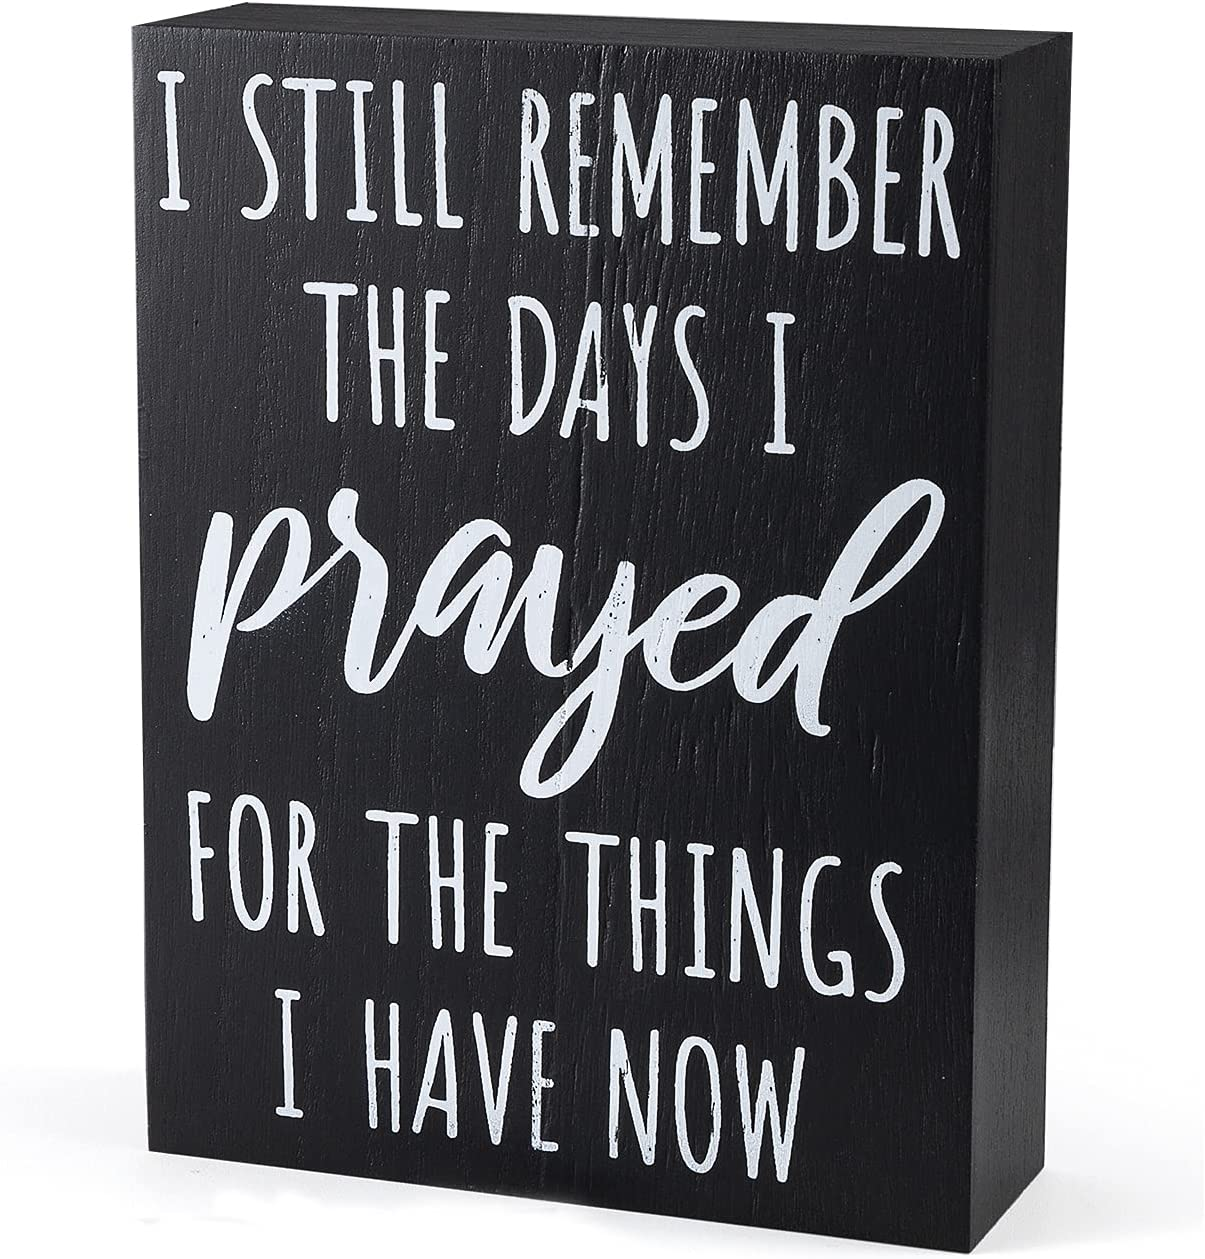 Home Decor Signs 6 x 8 Inch Wood Plaque, Modern Farmhouse Decor Wall Art Rustic Decor for Living Room, Office, Shelf Accent - Gifts for Mom Sister Grandma Christian Family Saying Quotes Decorations